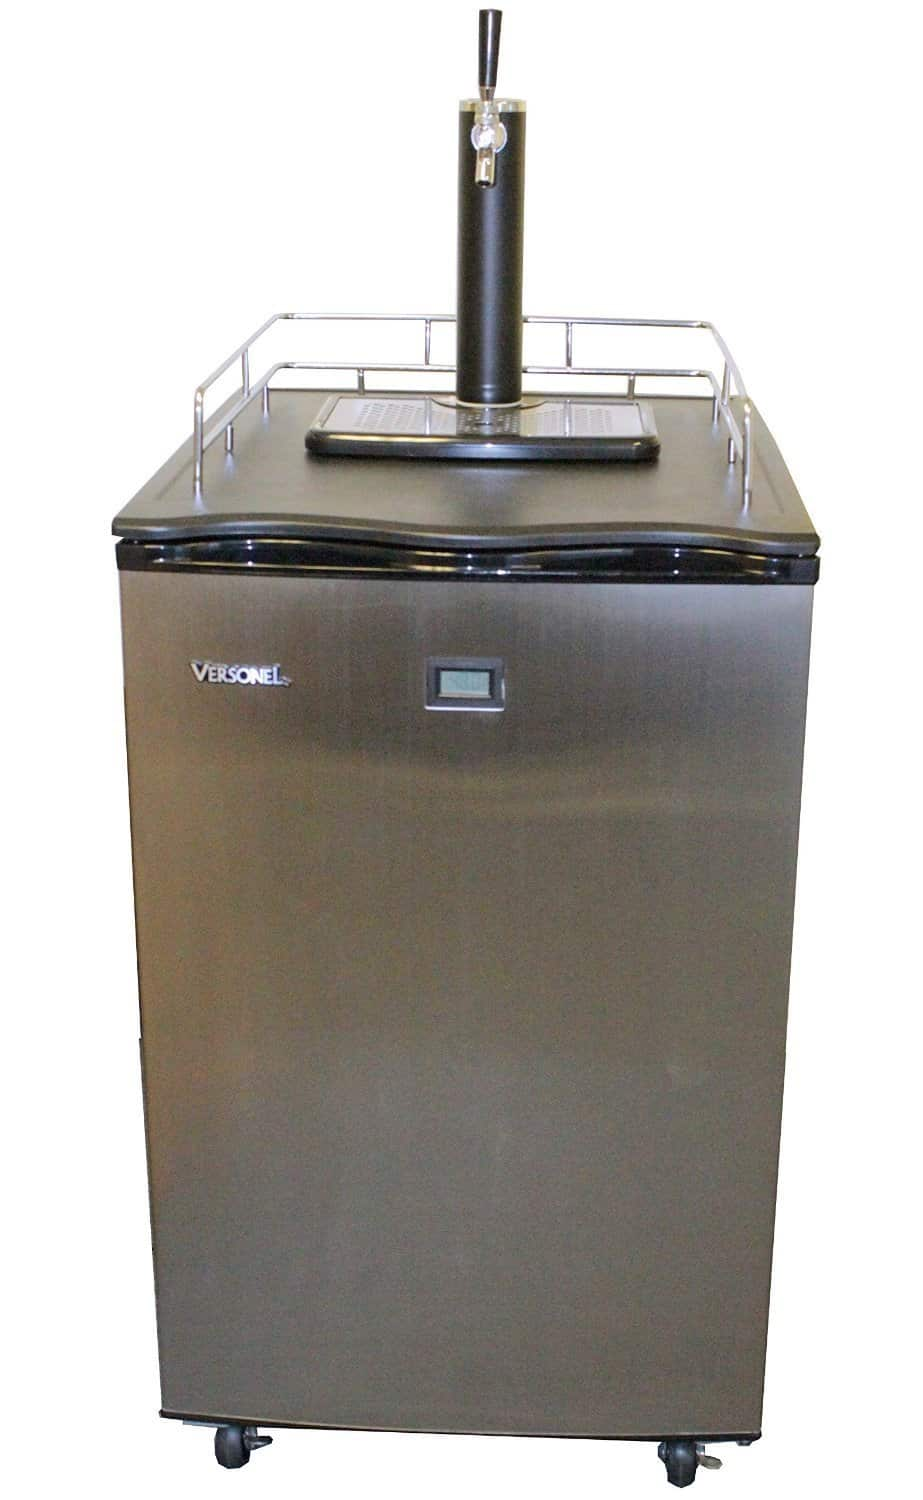 Versonel Single Tap Freestanding Kegerator